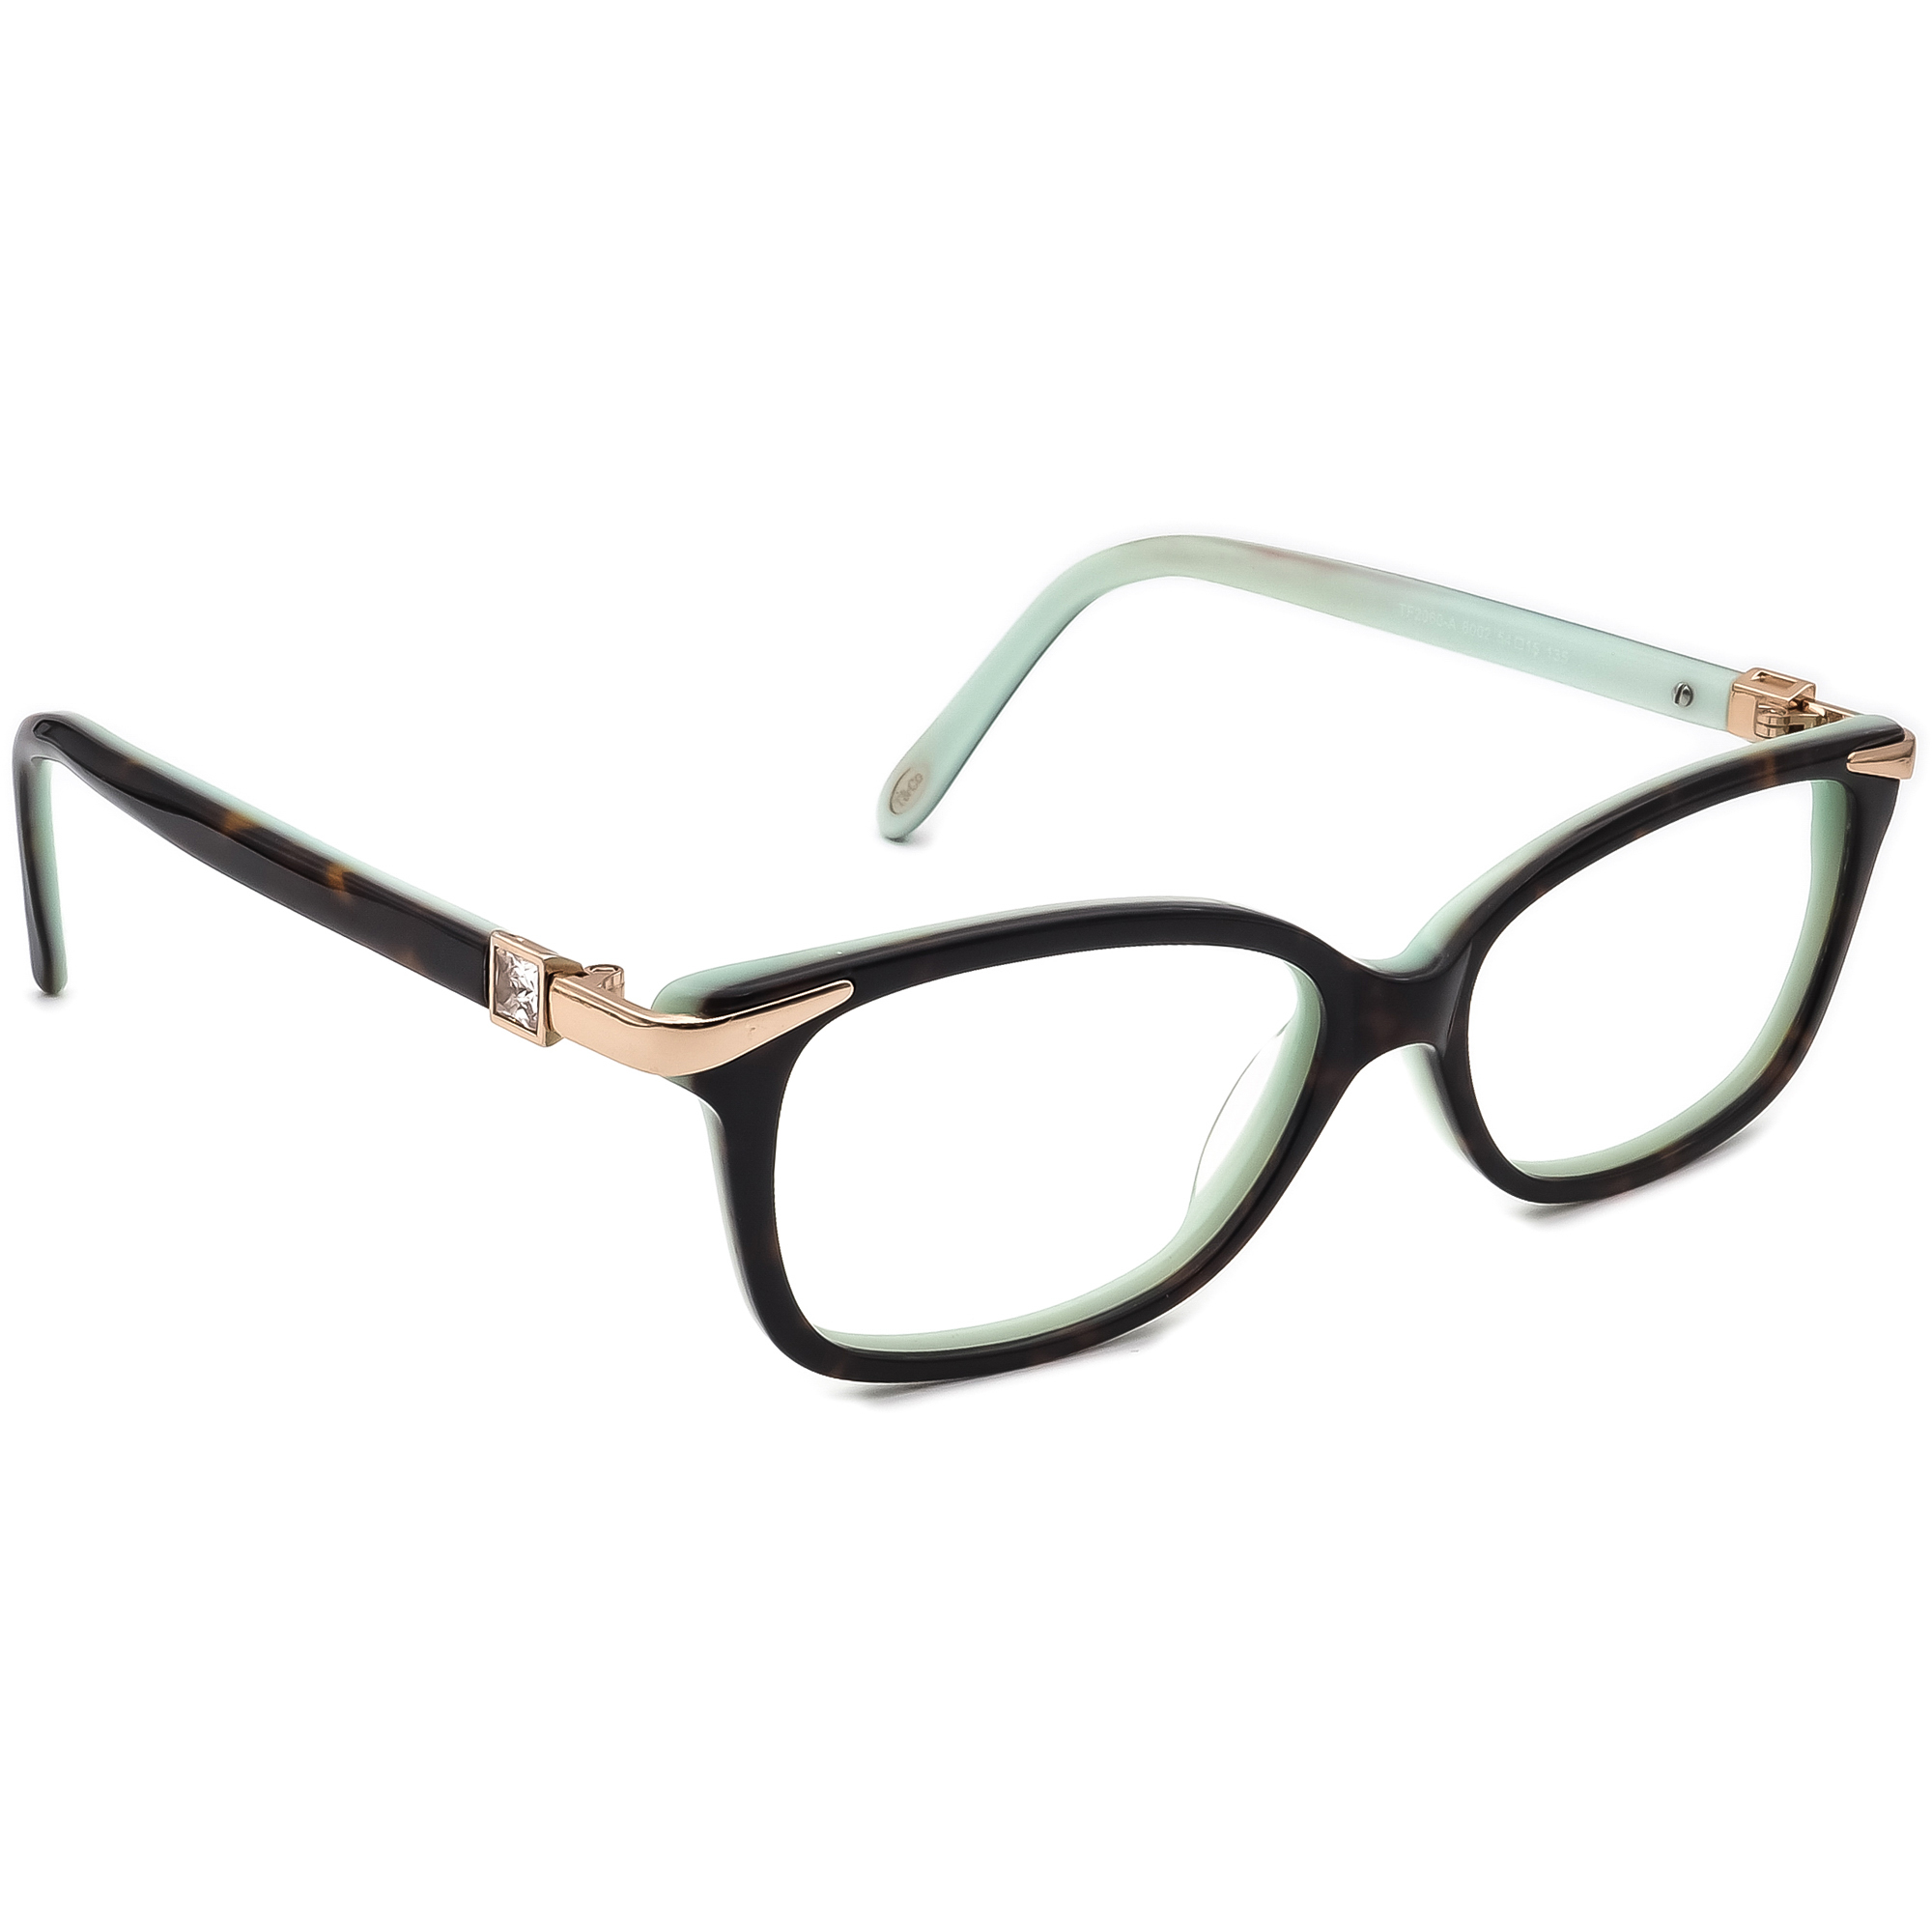 Tiffany & Co. TF2060-A 8002 Eyeglasses